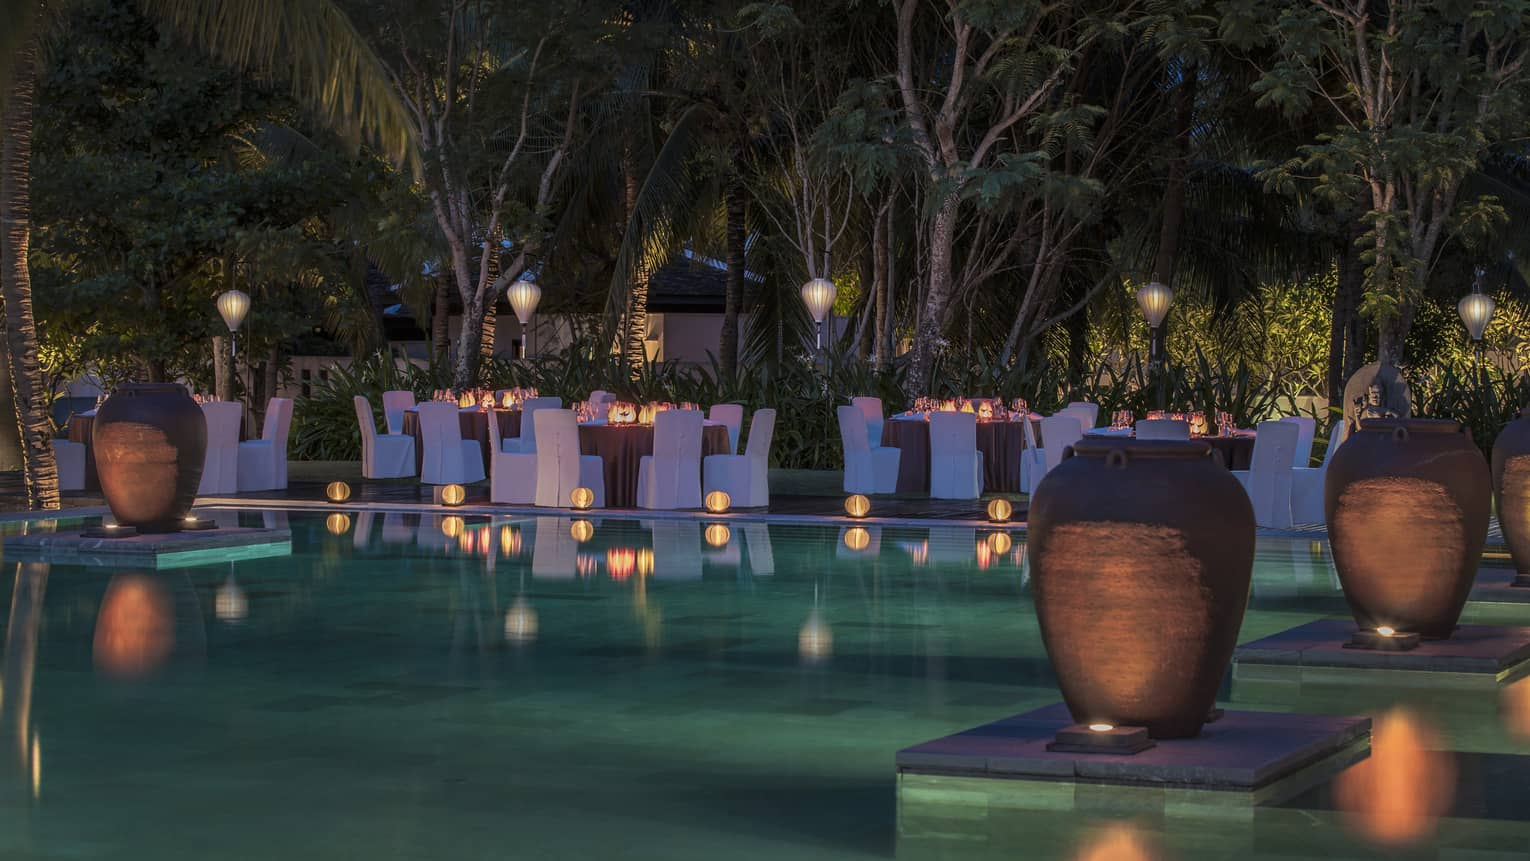 Tables and chairs with blue covers surround pool at night, surrounded by lanterns and vases